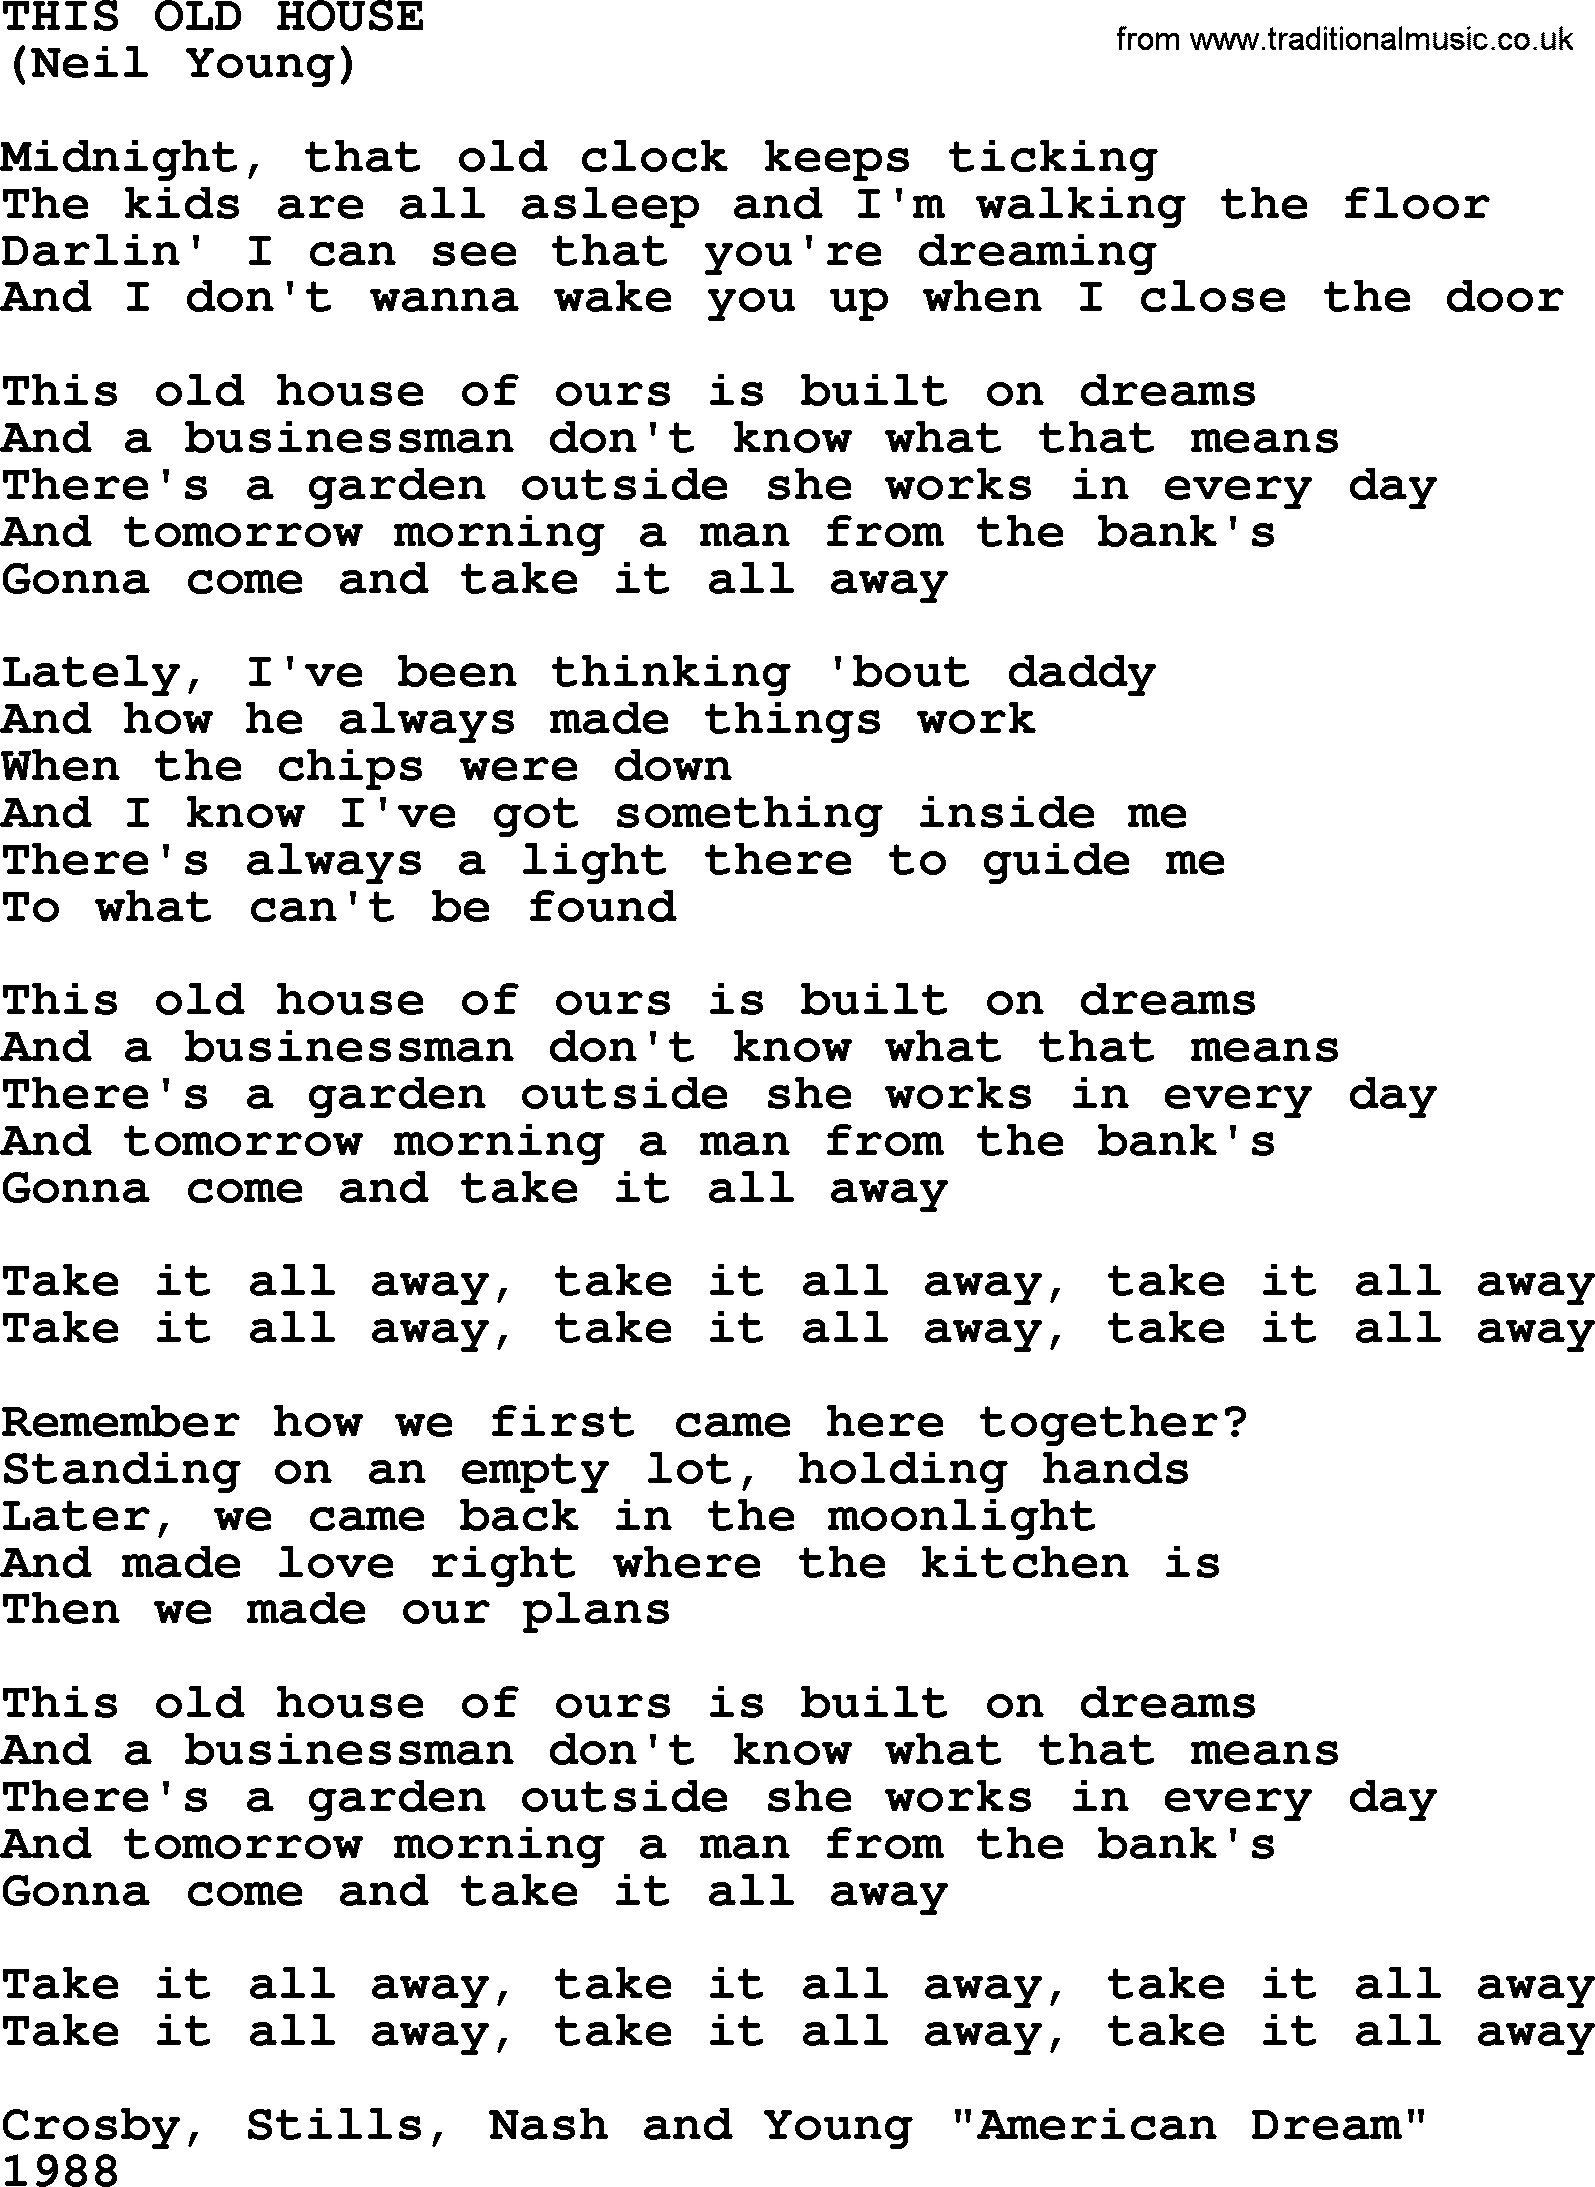 This old house by the byrds lyrics with pdf for Classic house music songs